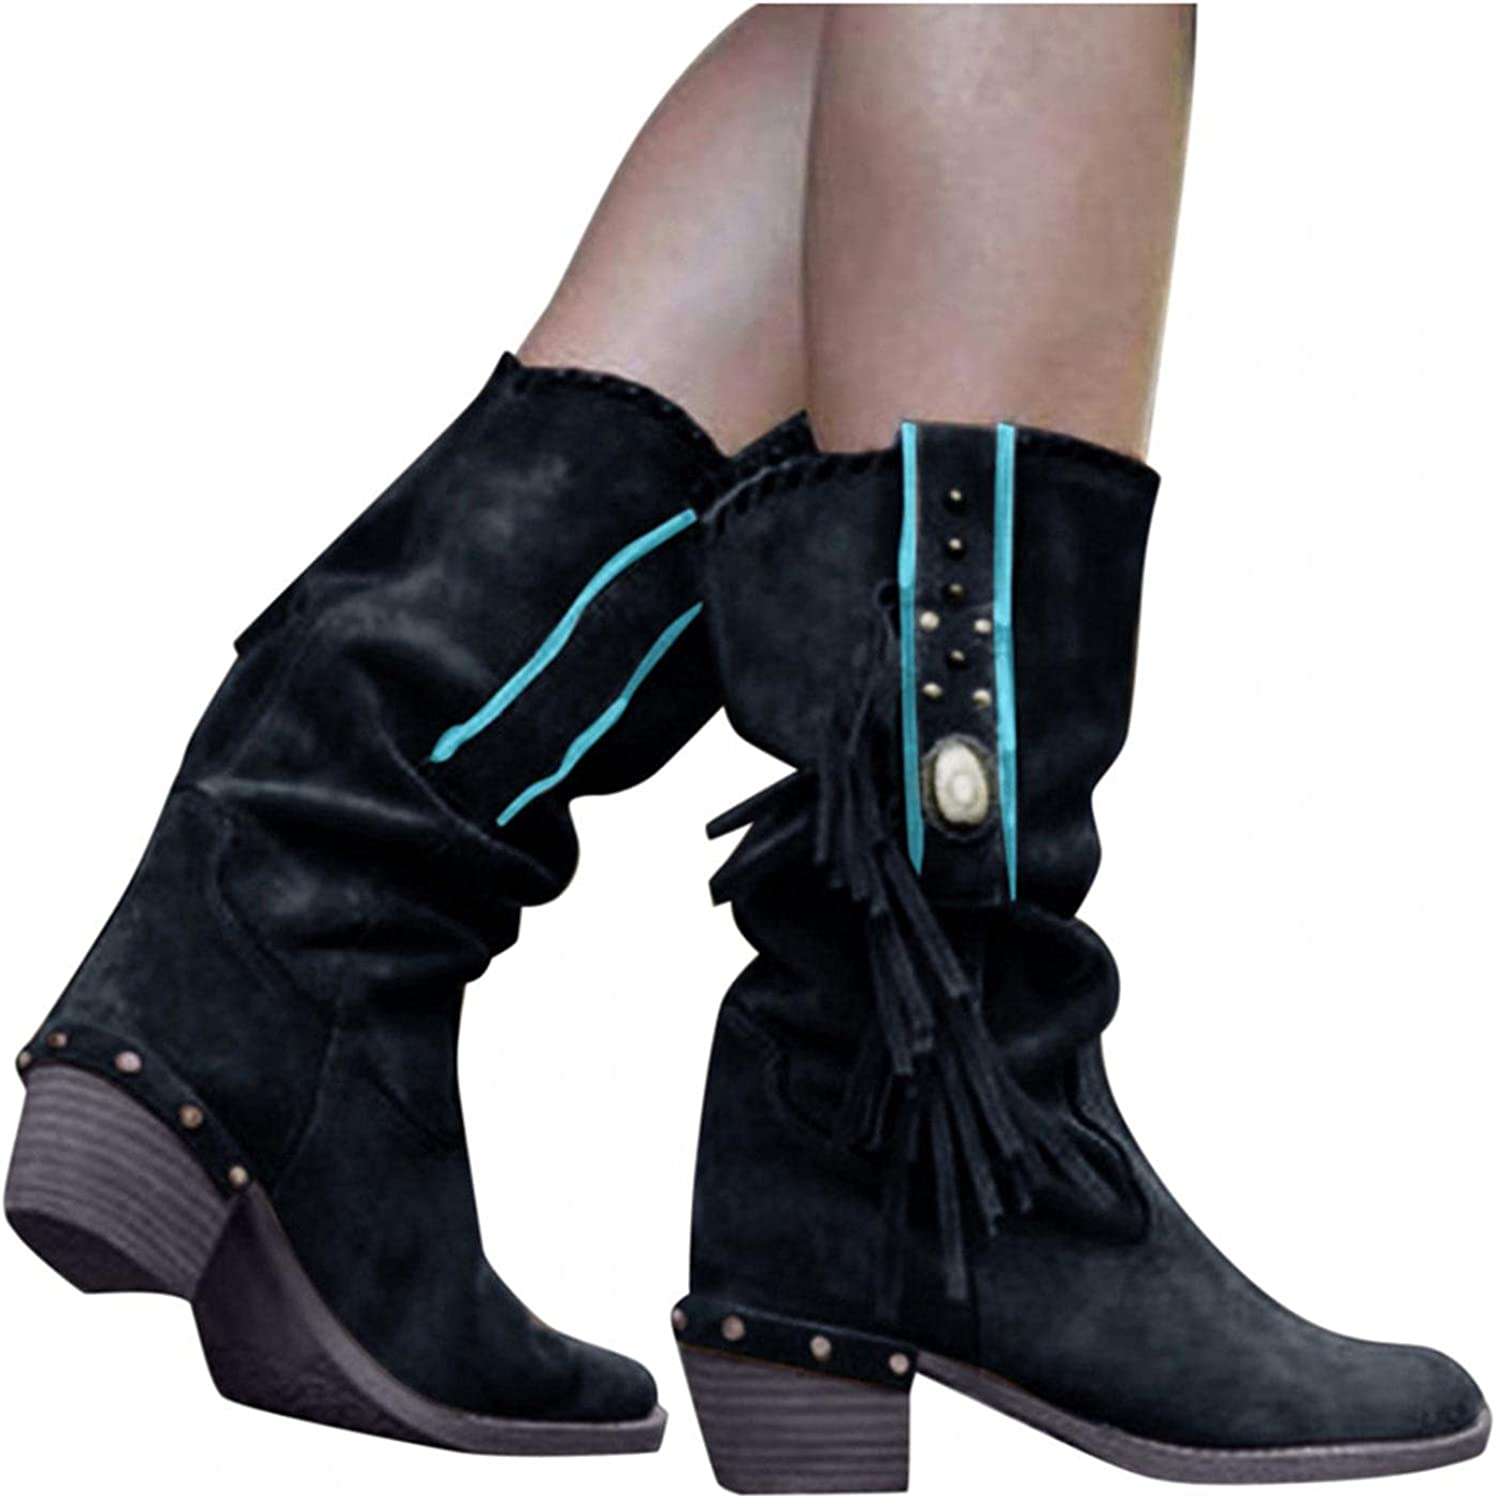 Niceast Boots for Women Casual Square Heels Womens Shoes Retro Fringed Mid Calf Boots Fashion Comfortable Warm Booties